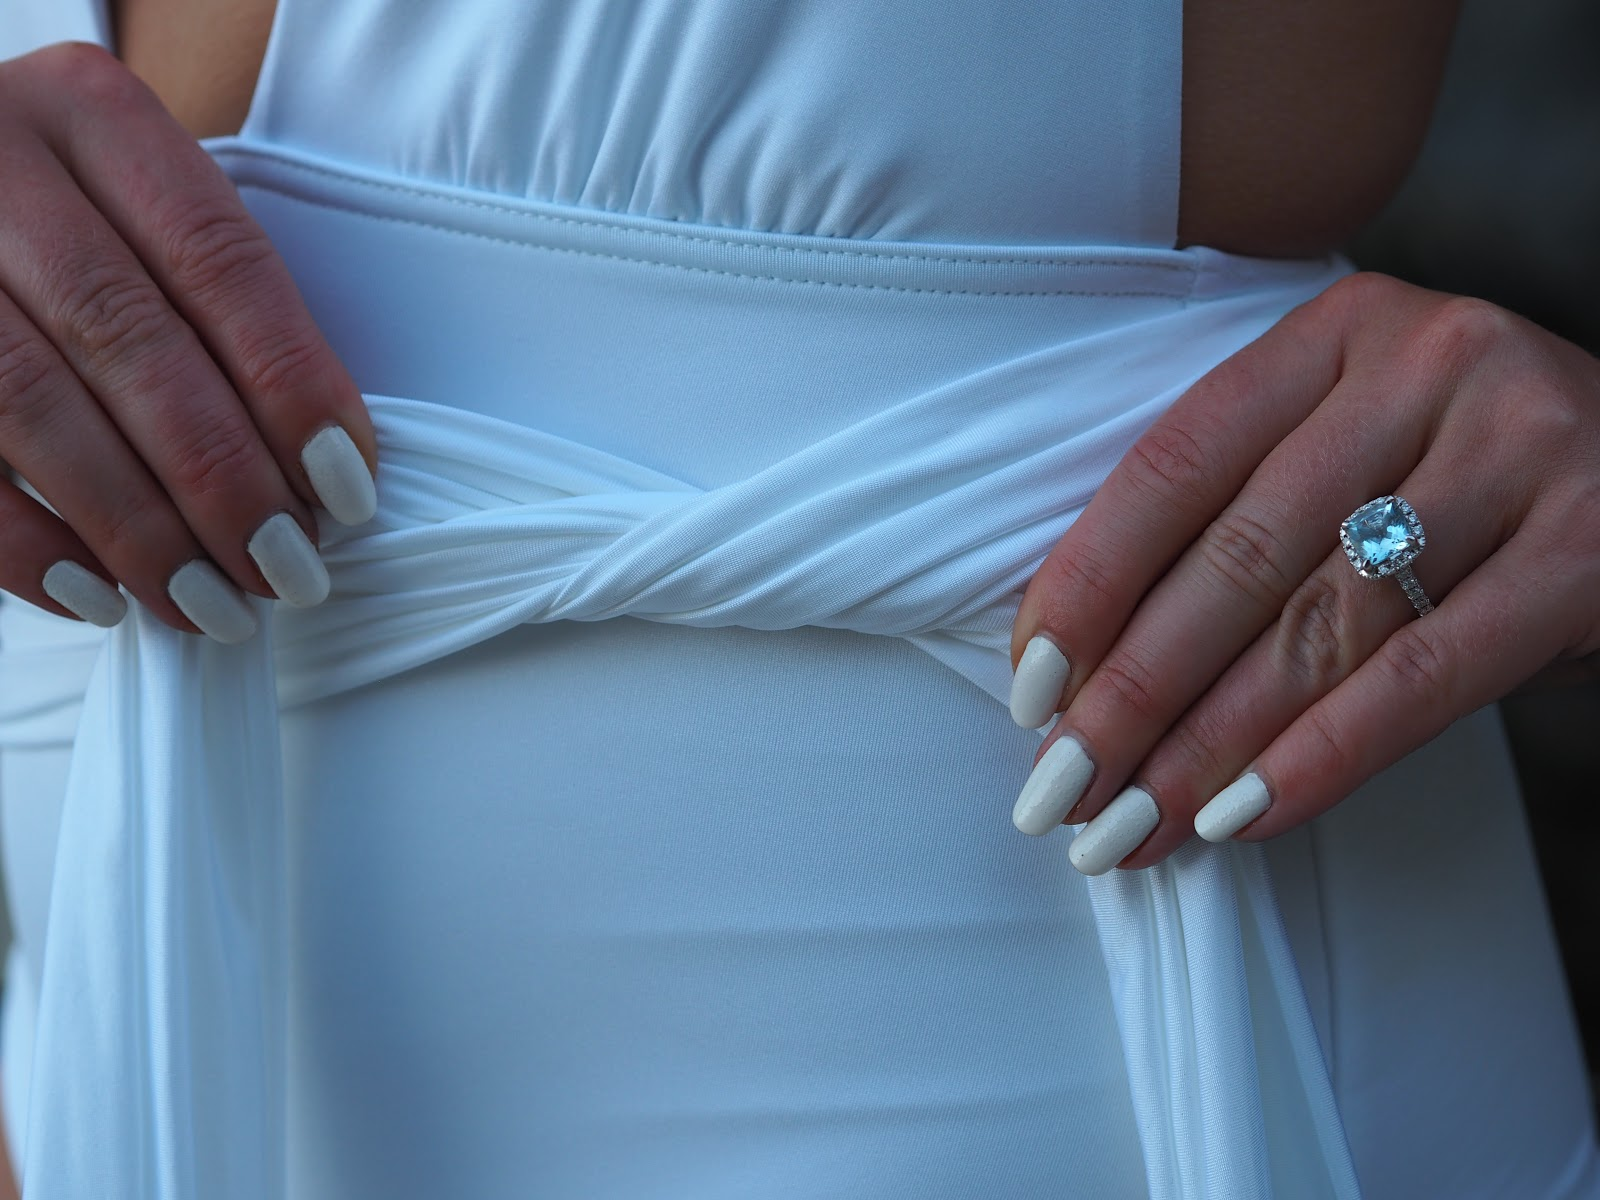 white fingernails tying white swimsuit bow with beautiful engagement ring